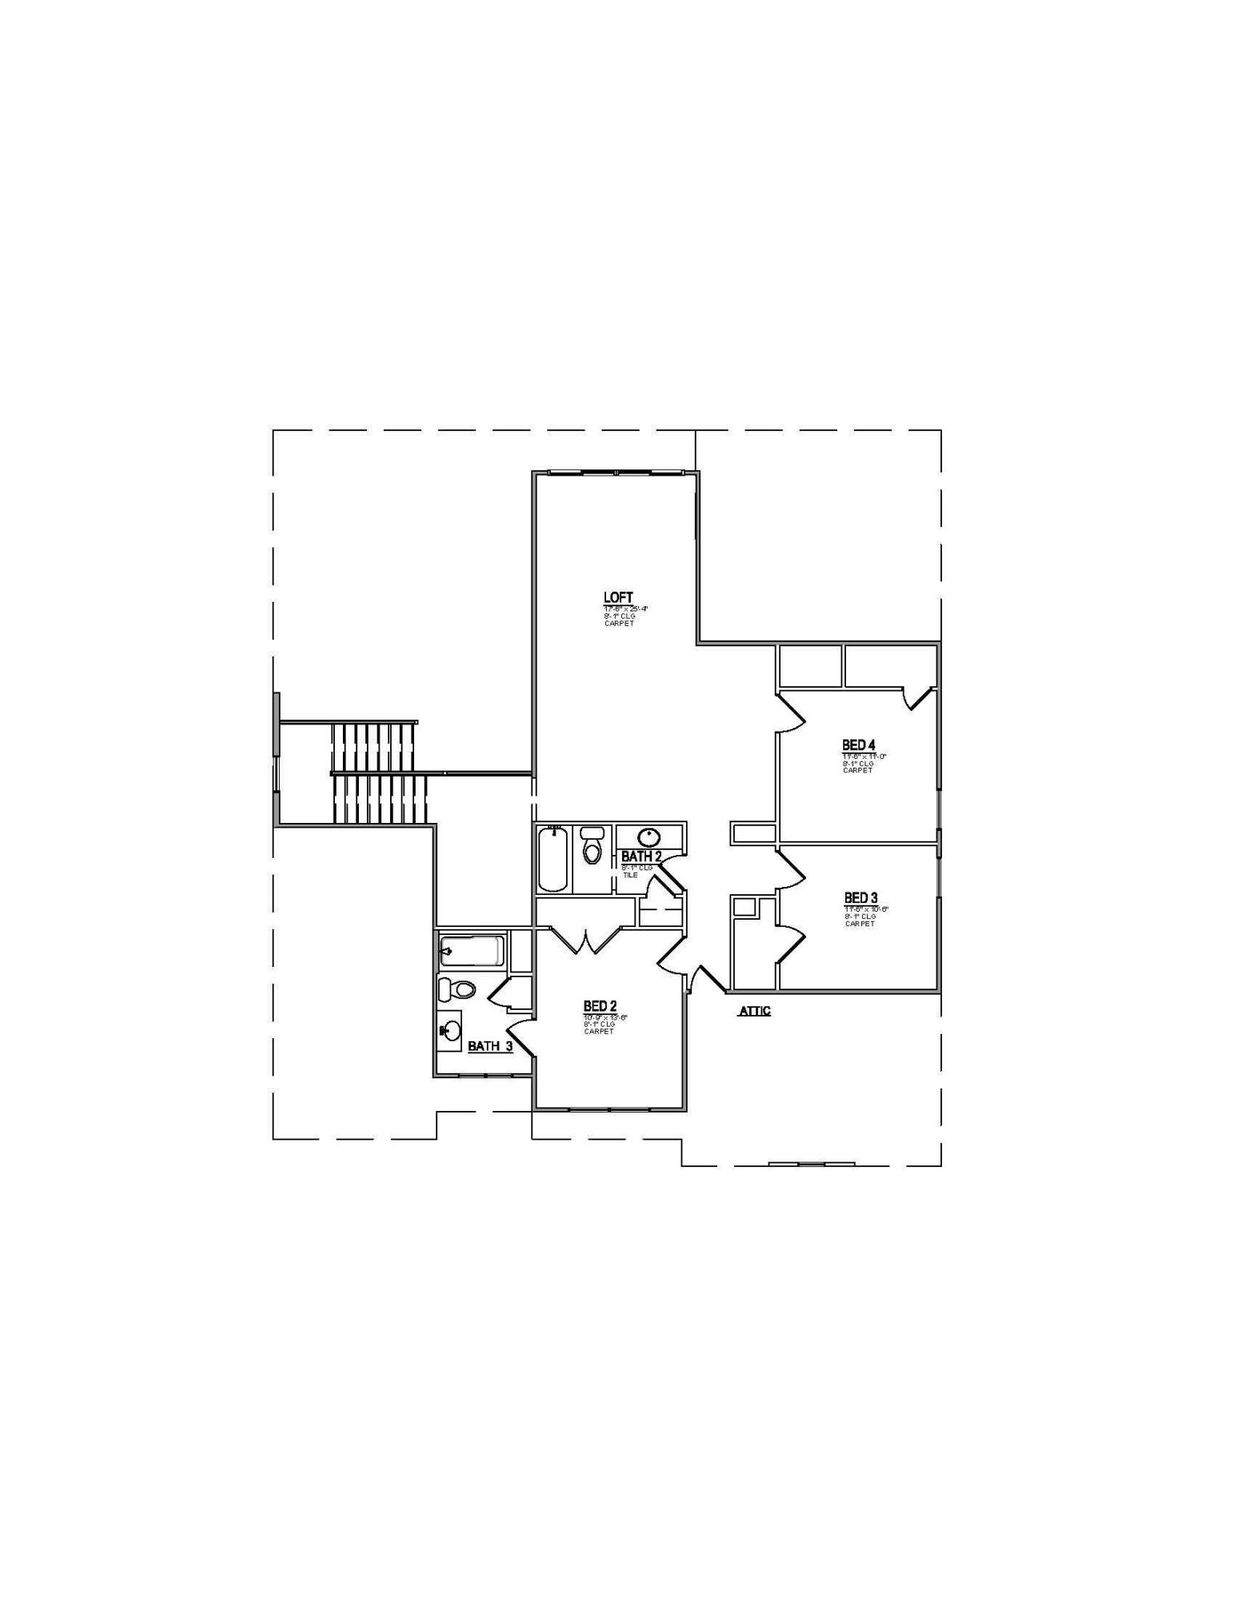 HHALL45 - MARKUPS-2ND FLOOR